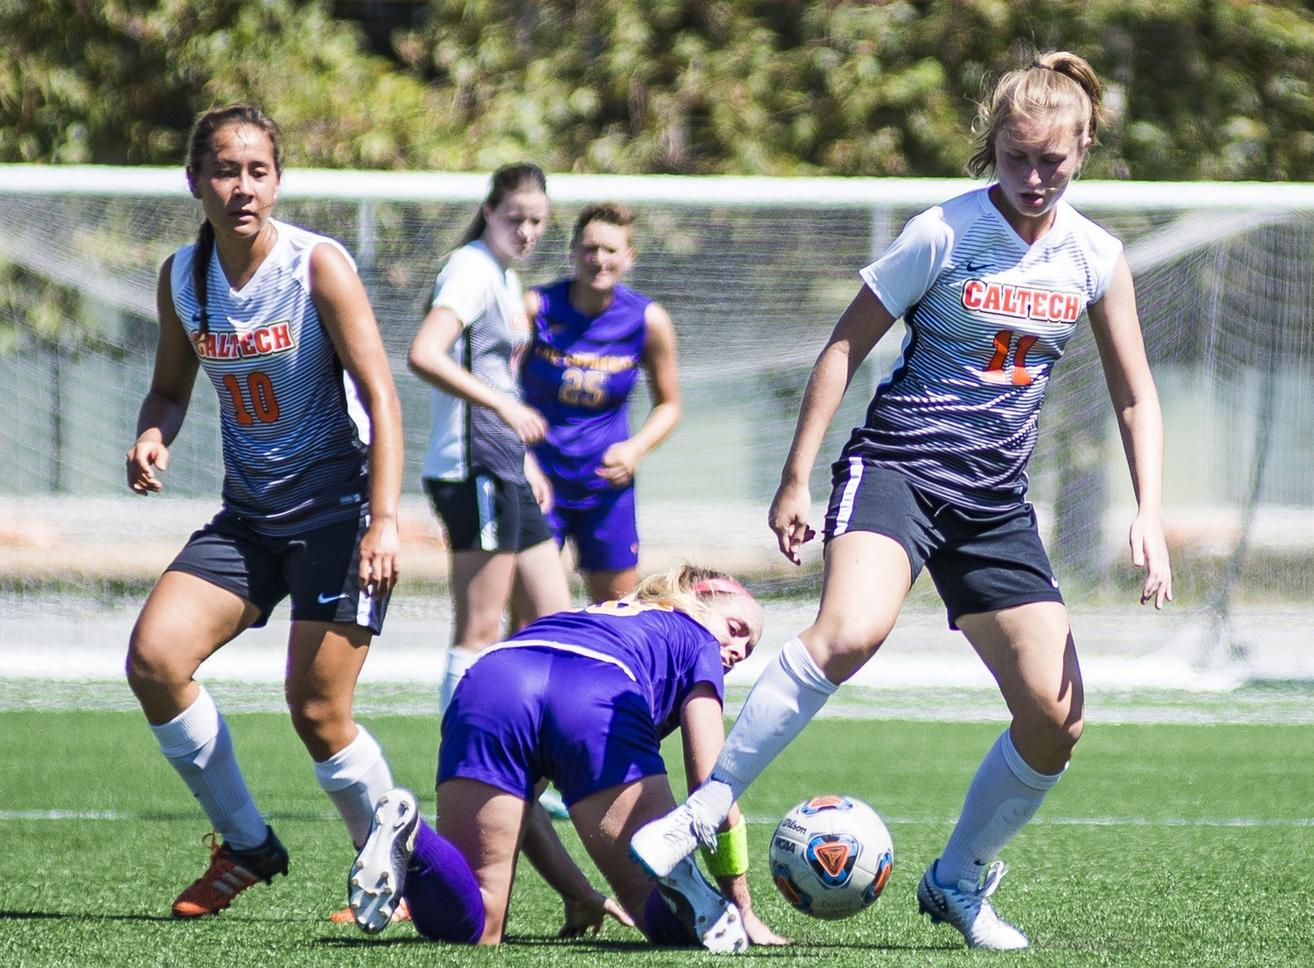 Women's Soccer Tightens, Holds Redlands in Second Half